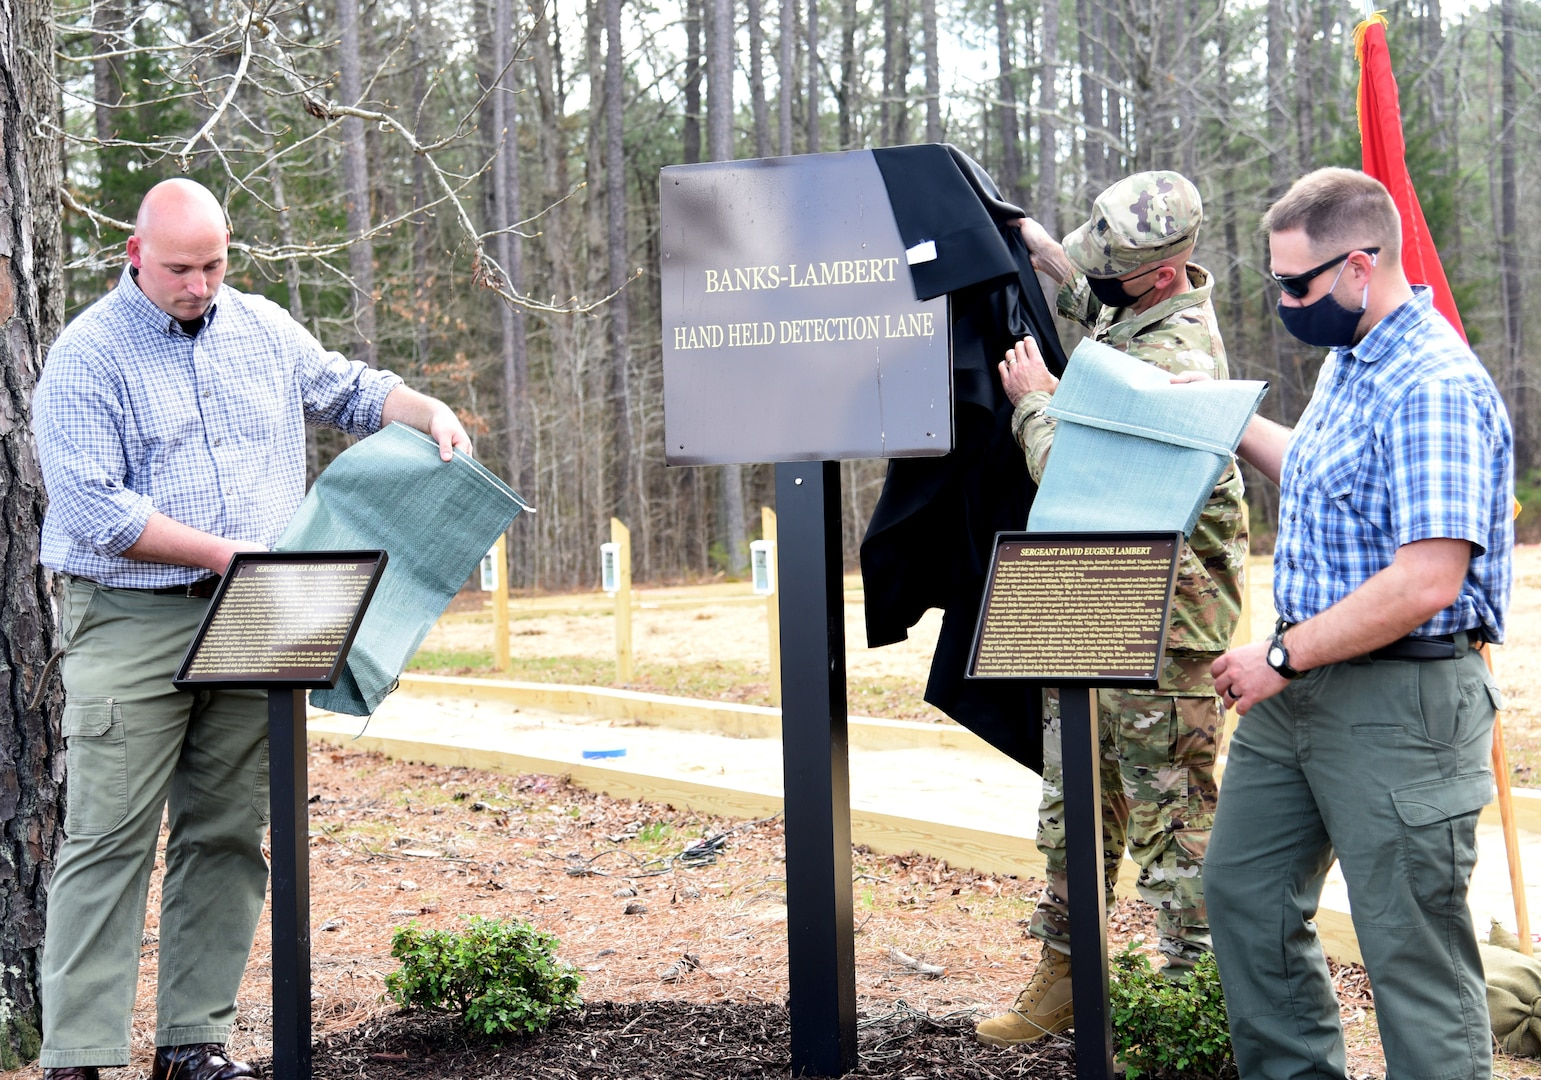 Current and former Virginia National Guard Soldiers and guests attend a dedication ceremony for the new Banks-Lambert Handheld Detection Lane March 26, 2021, at Fort Pickett, Virginia.